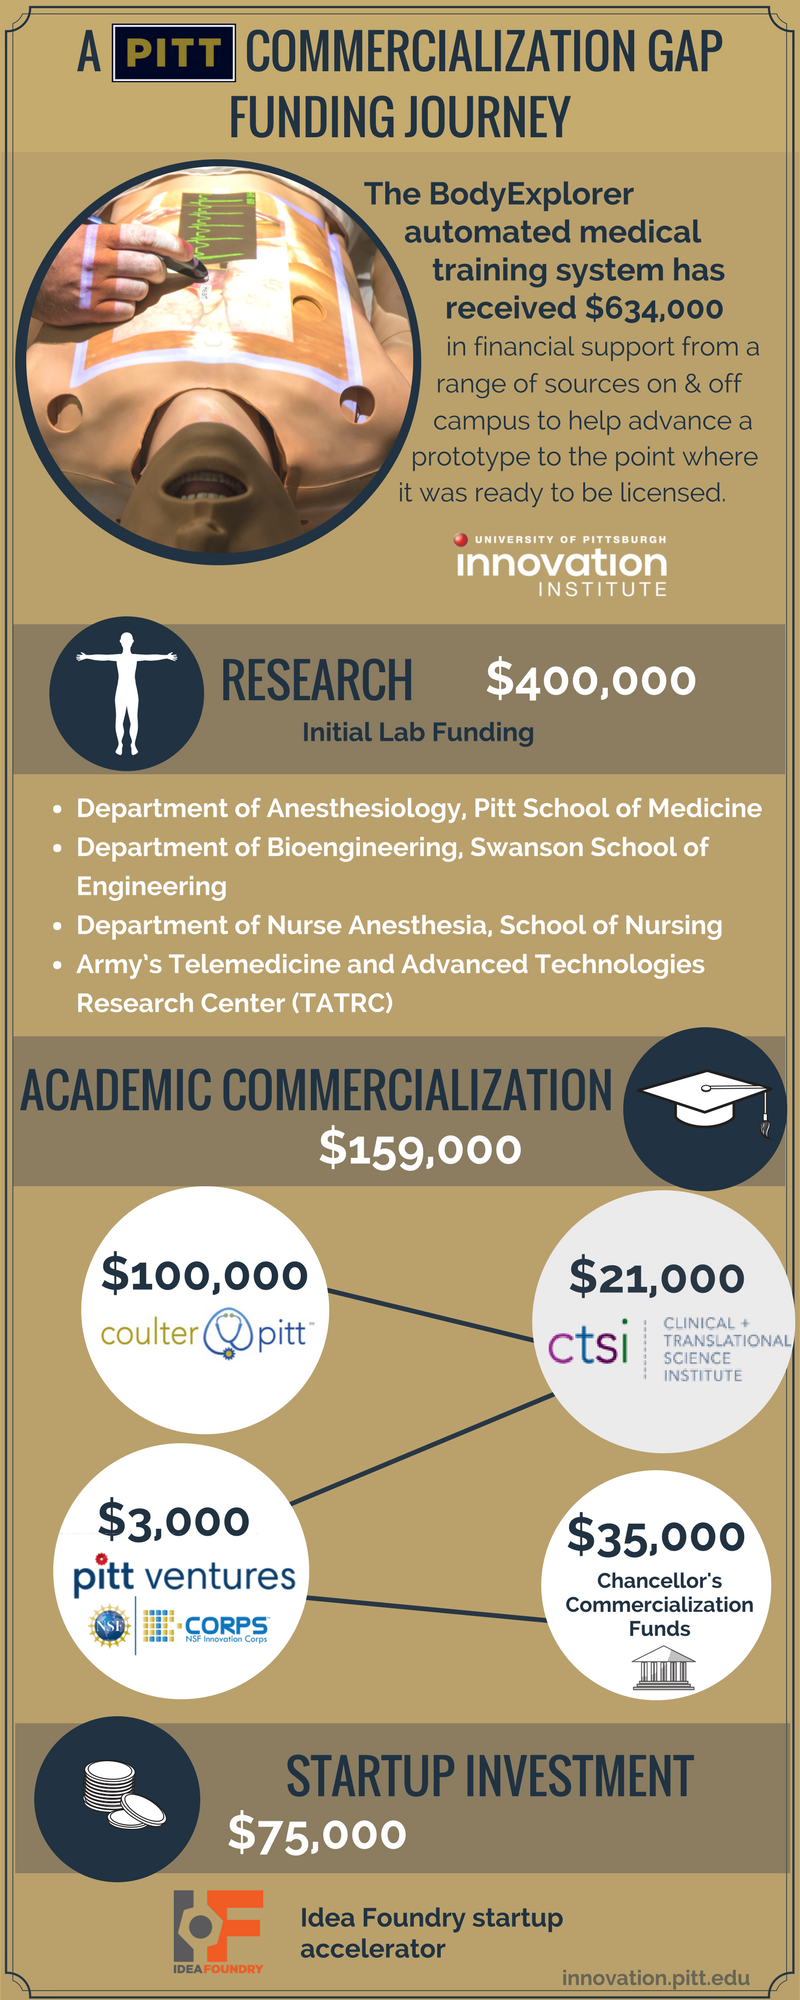 BodyExplorer_A pitt commercialization gap funding journey_FINAL.png